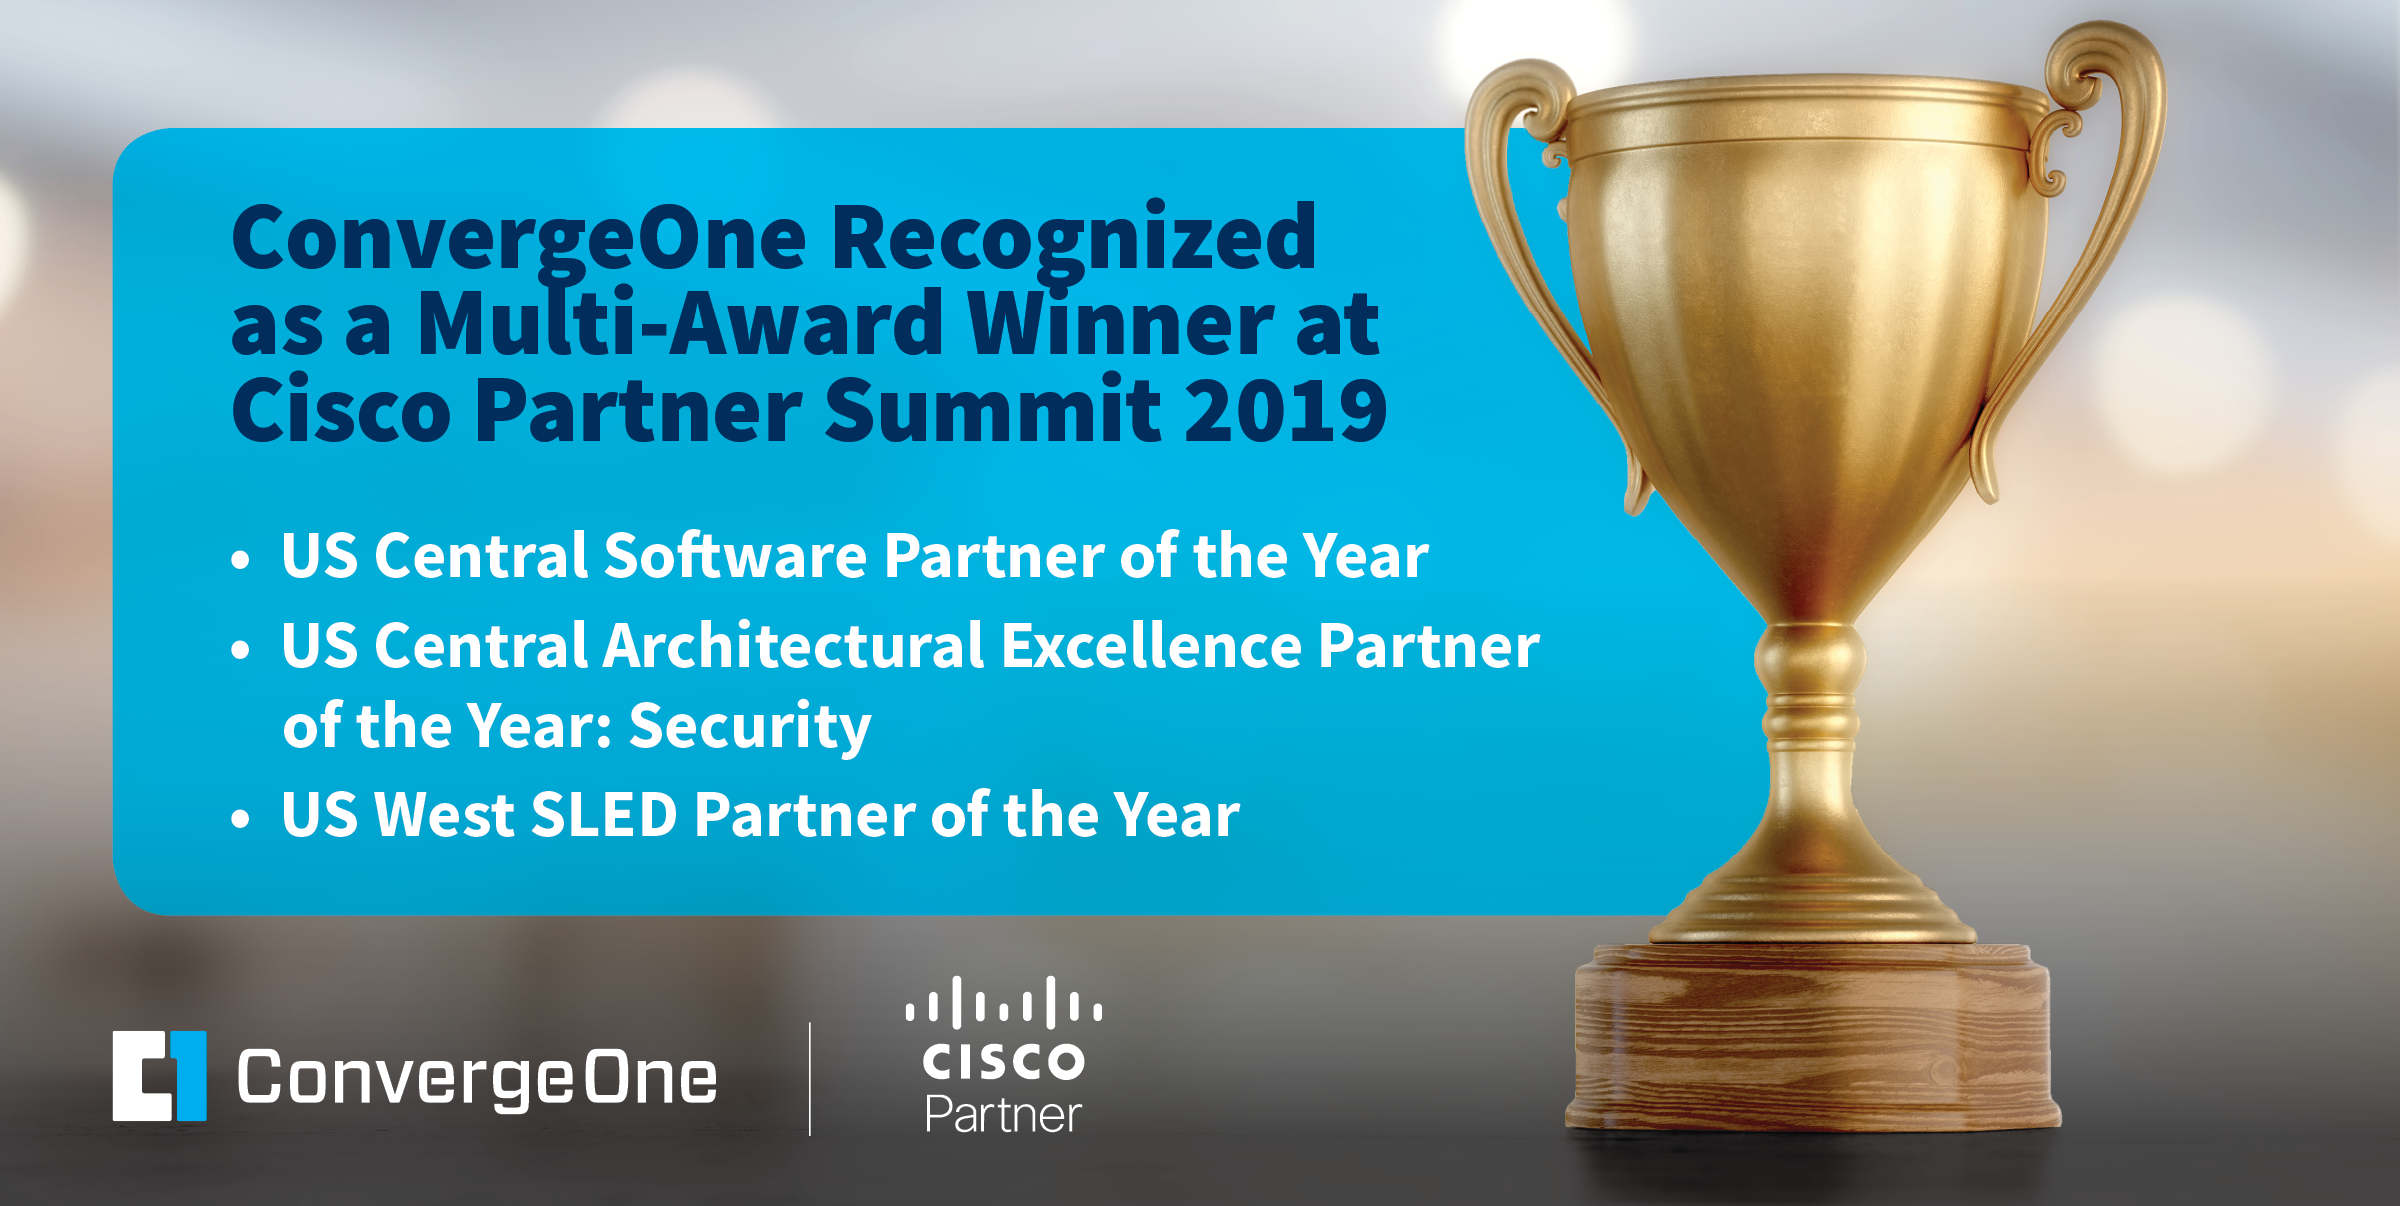 ConvergeOne Recognized as a Multi-Award Winner at Cisco Partner Summit 2019